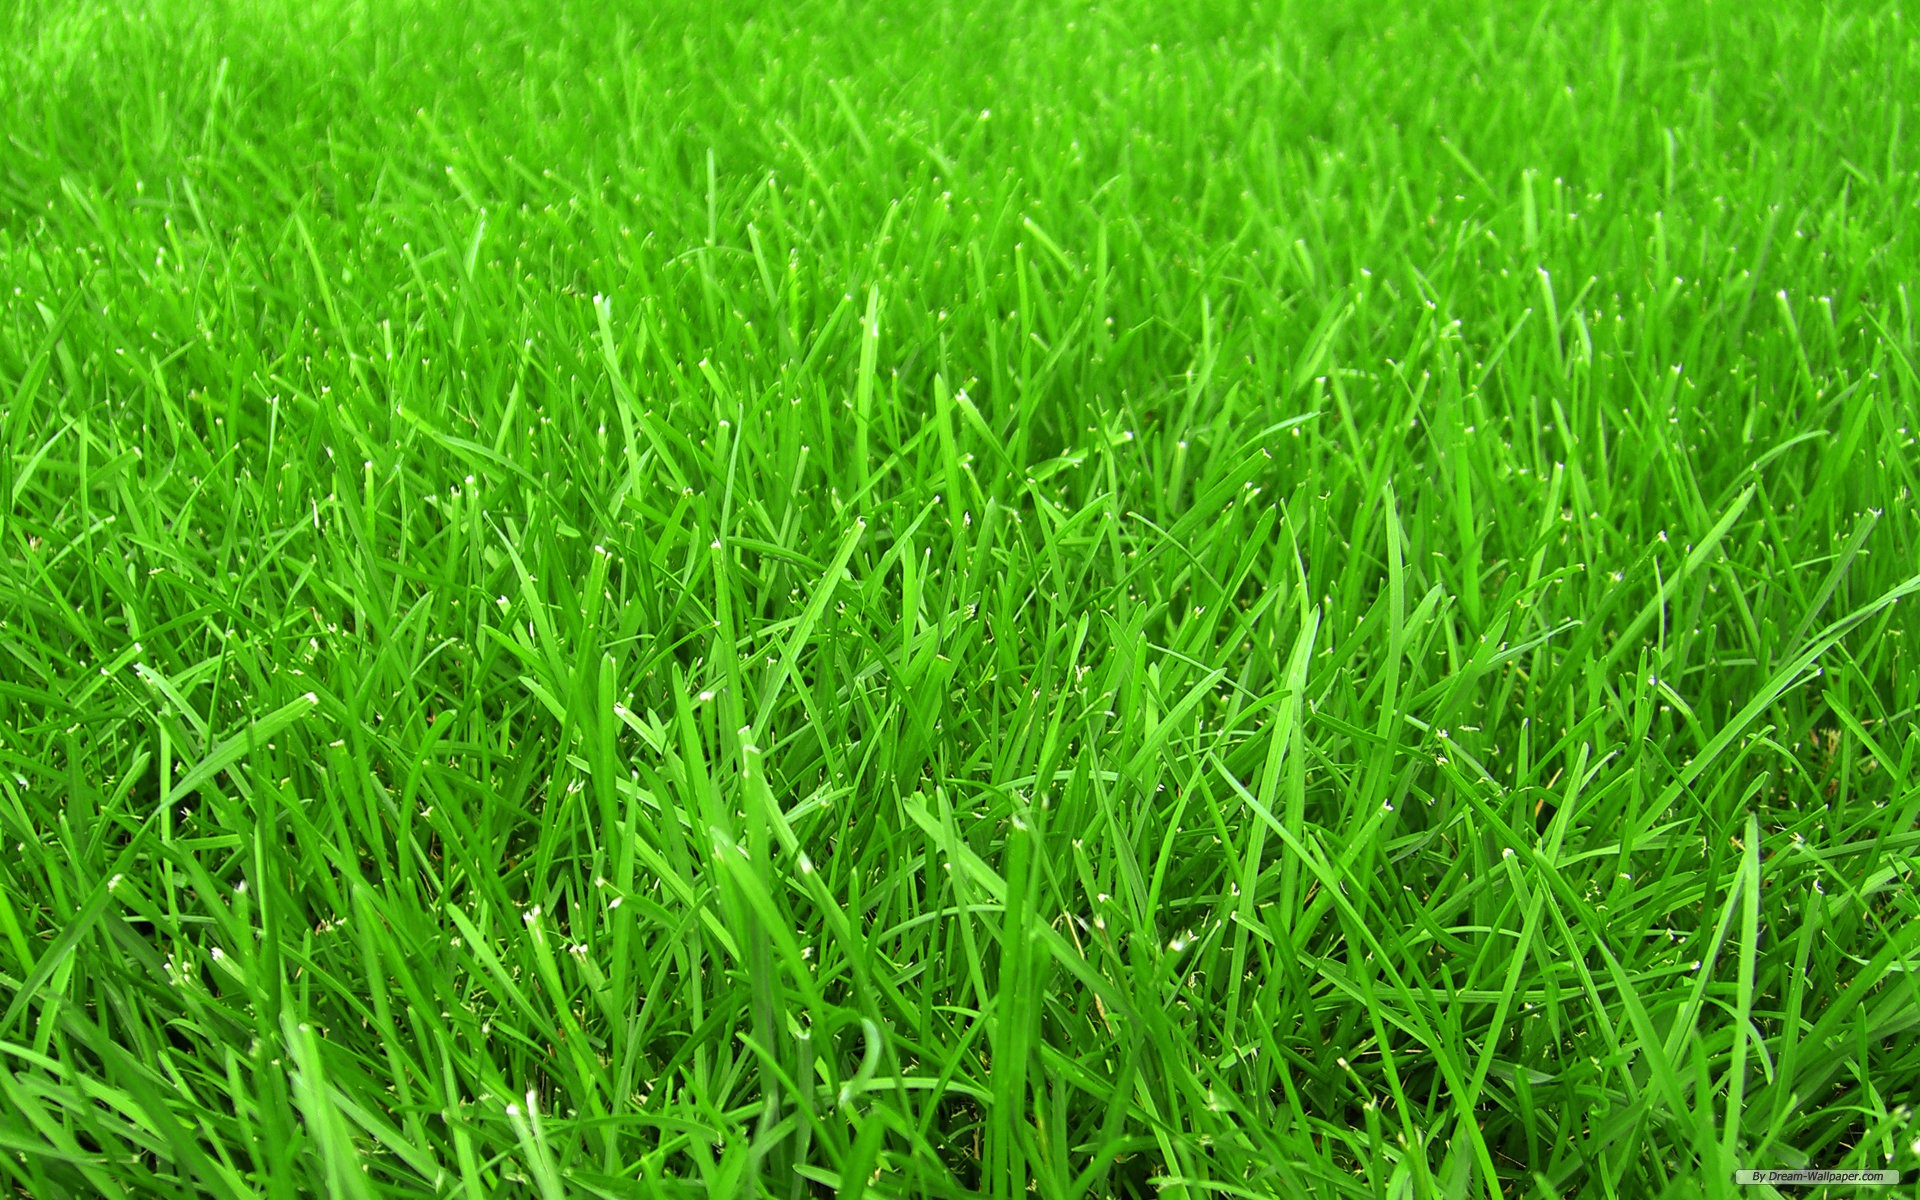 Green Grass Nature Wallpaper for Desktop Background